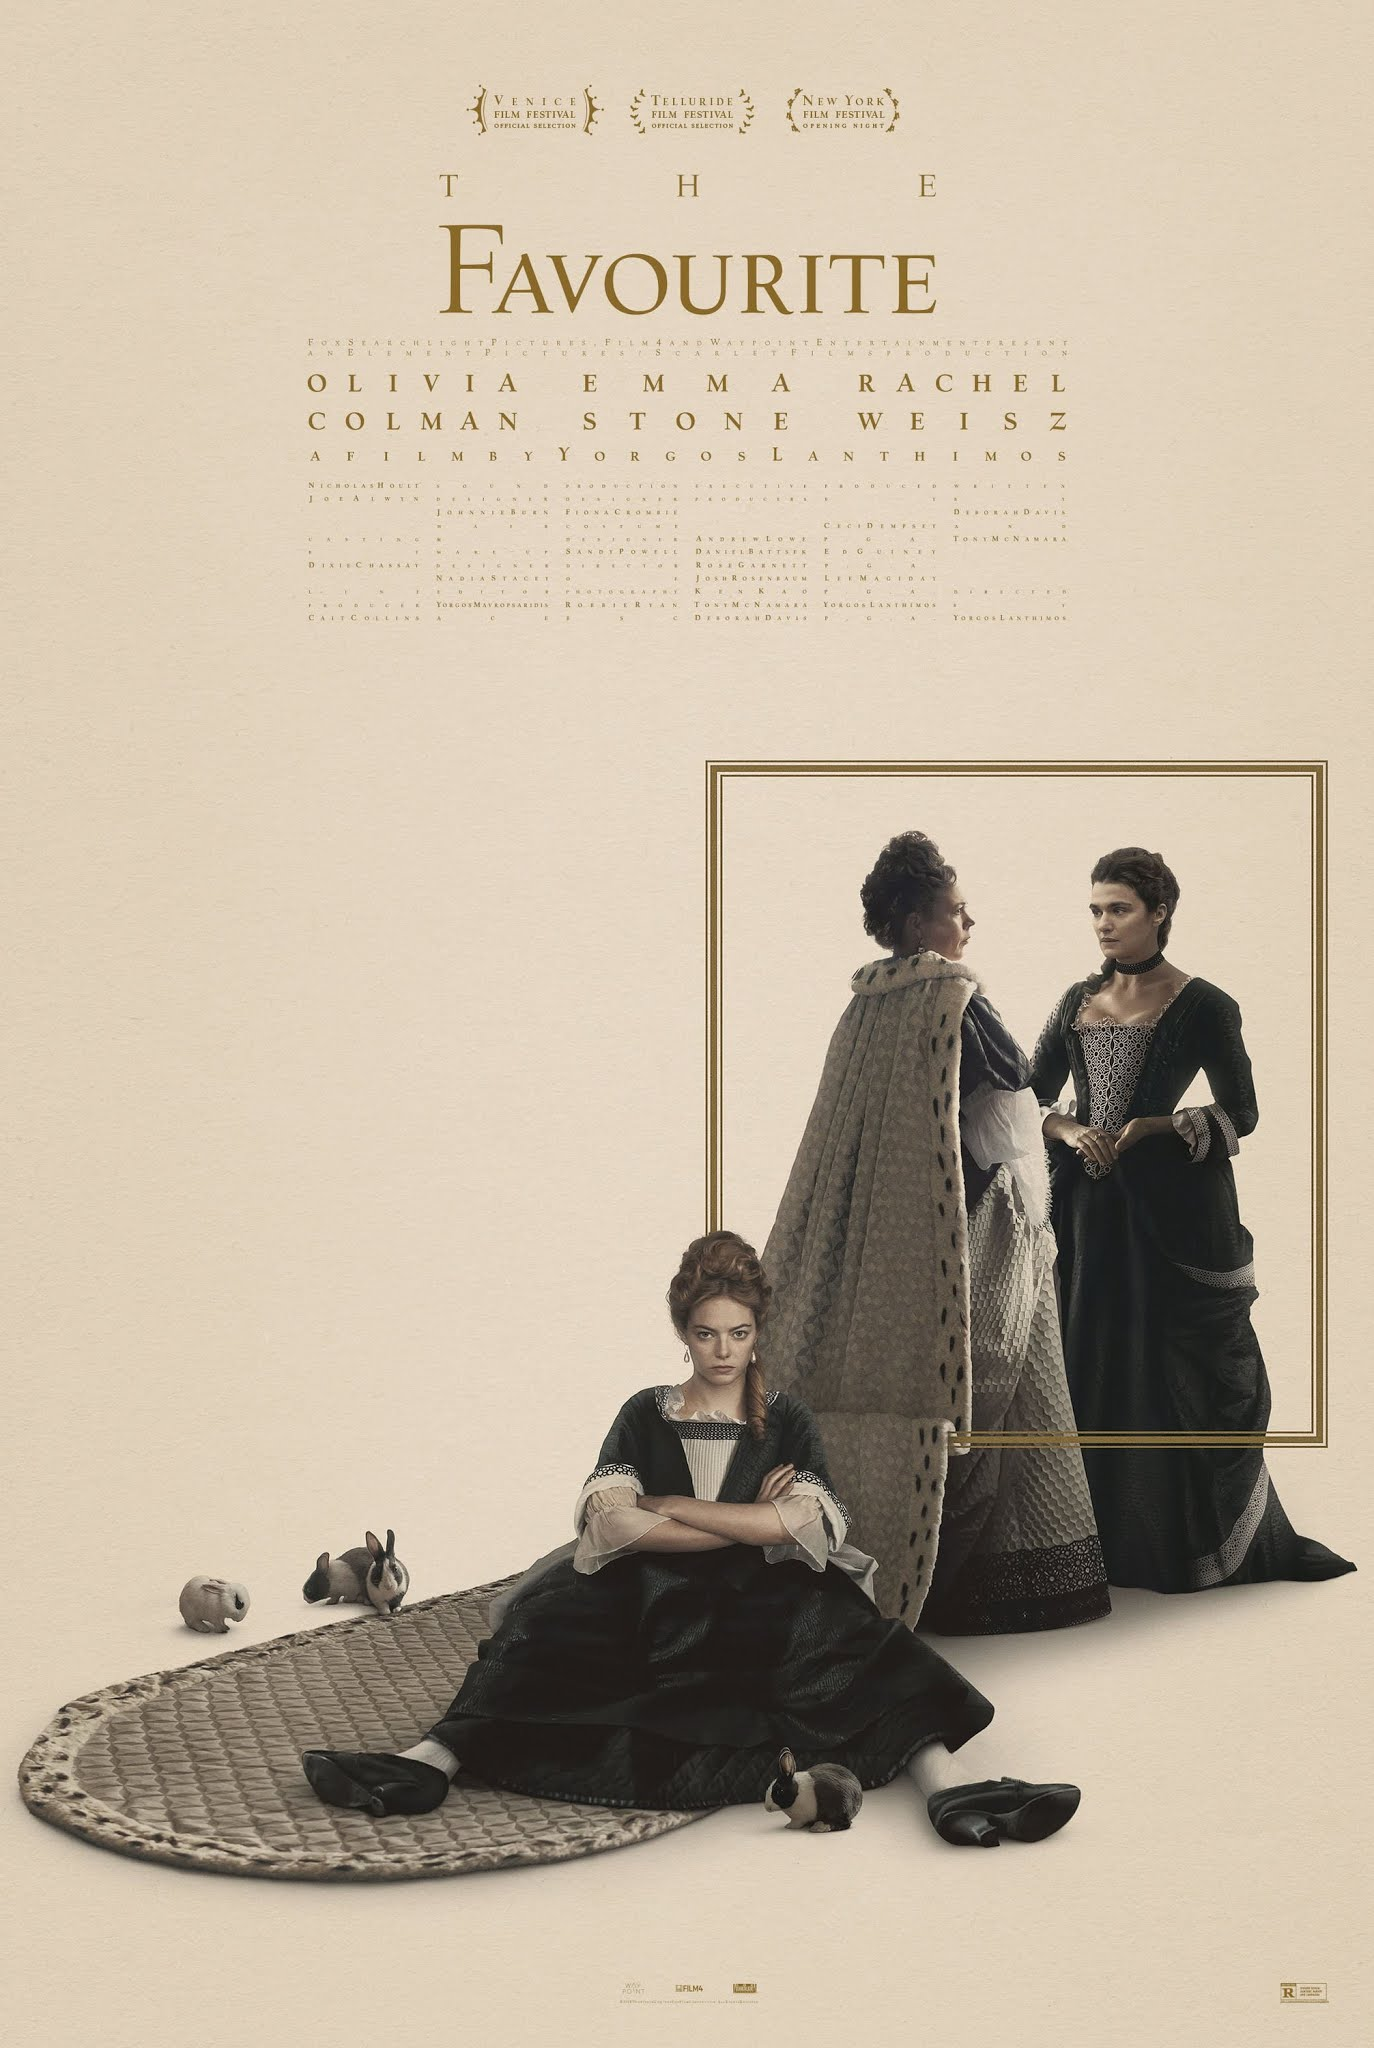 """The Favourite"" (""Faworyta"")"